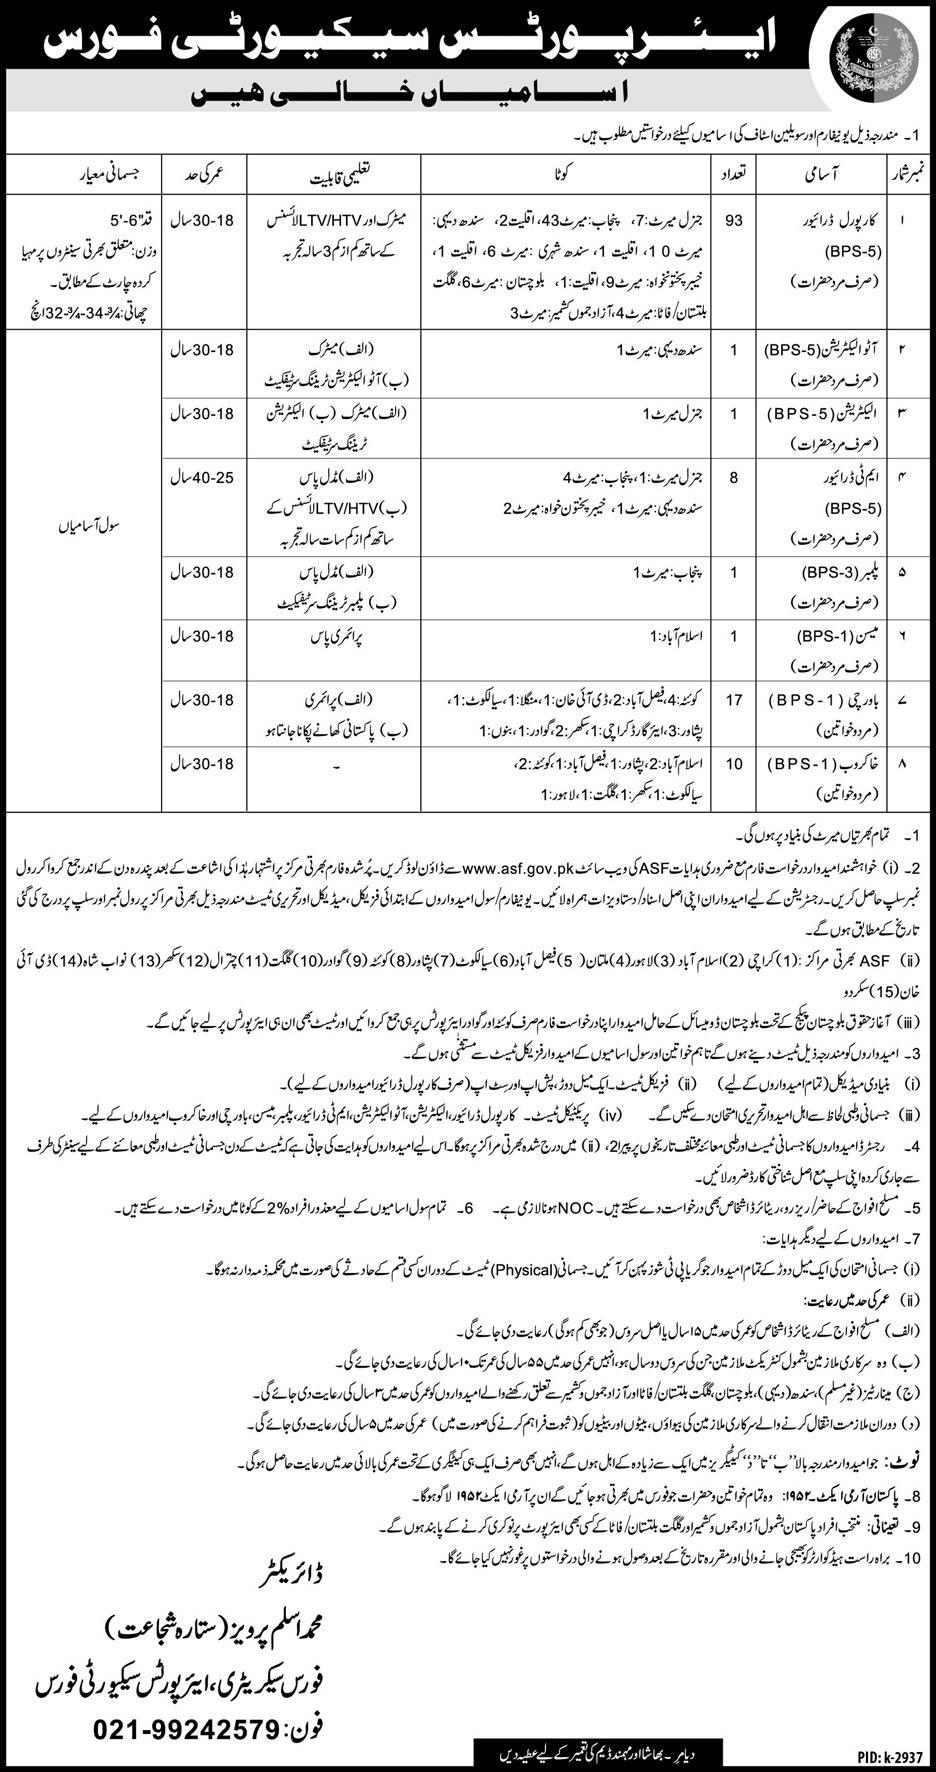 Airport Security Force ASF Jobs 2019 Application Form, Last Date